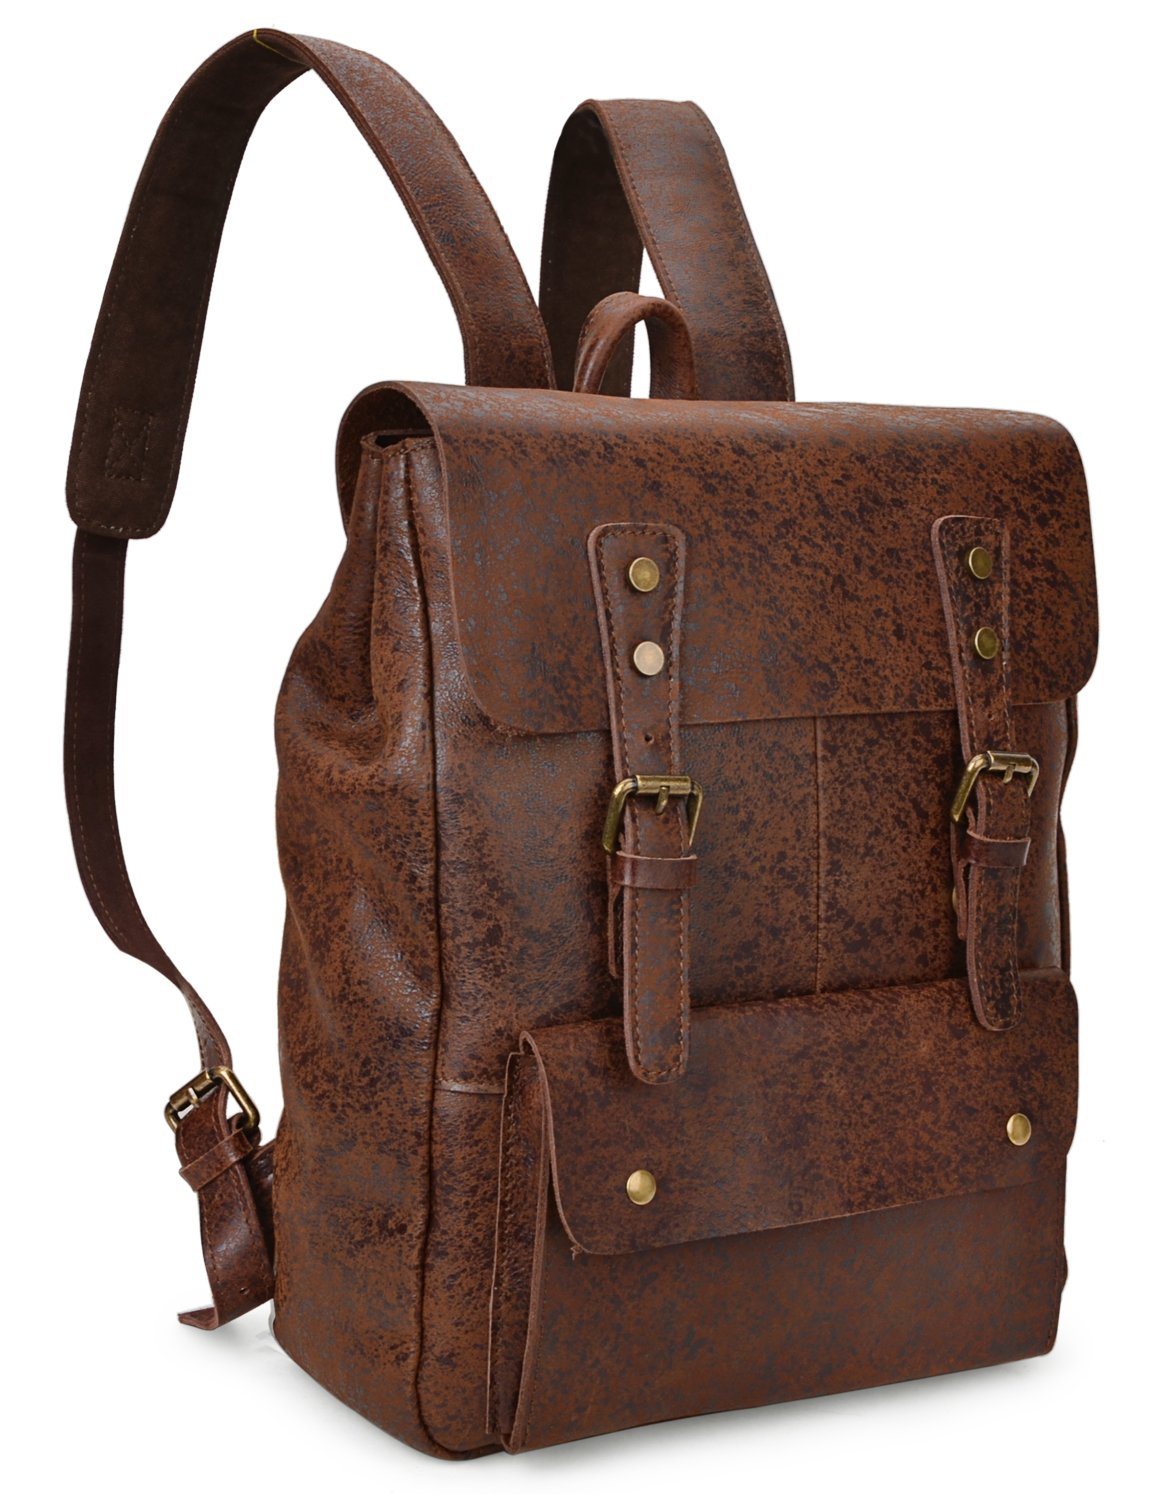 ALTOSY Vintage Genuine Leather Backpack College School Bookbag Travel Rucksack 8175 (coffee) by ALTOSY (Image #2)